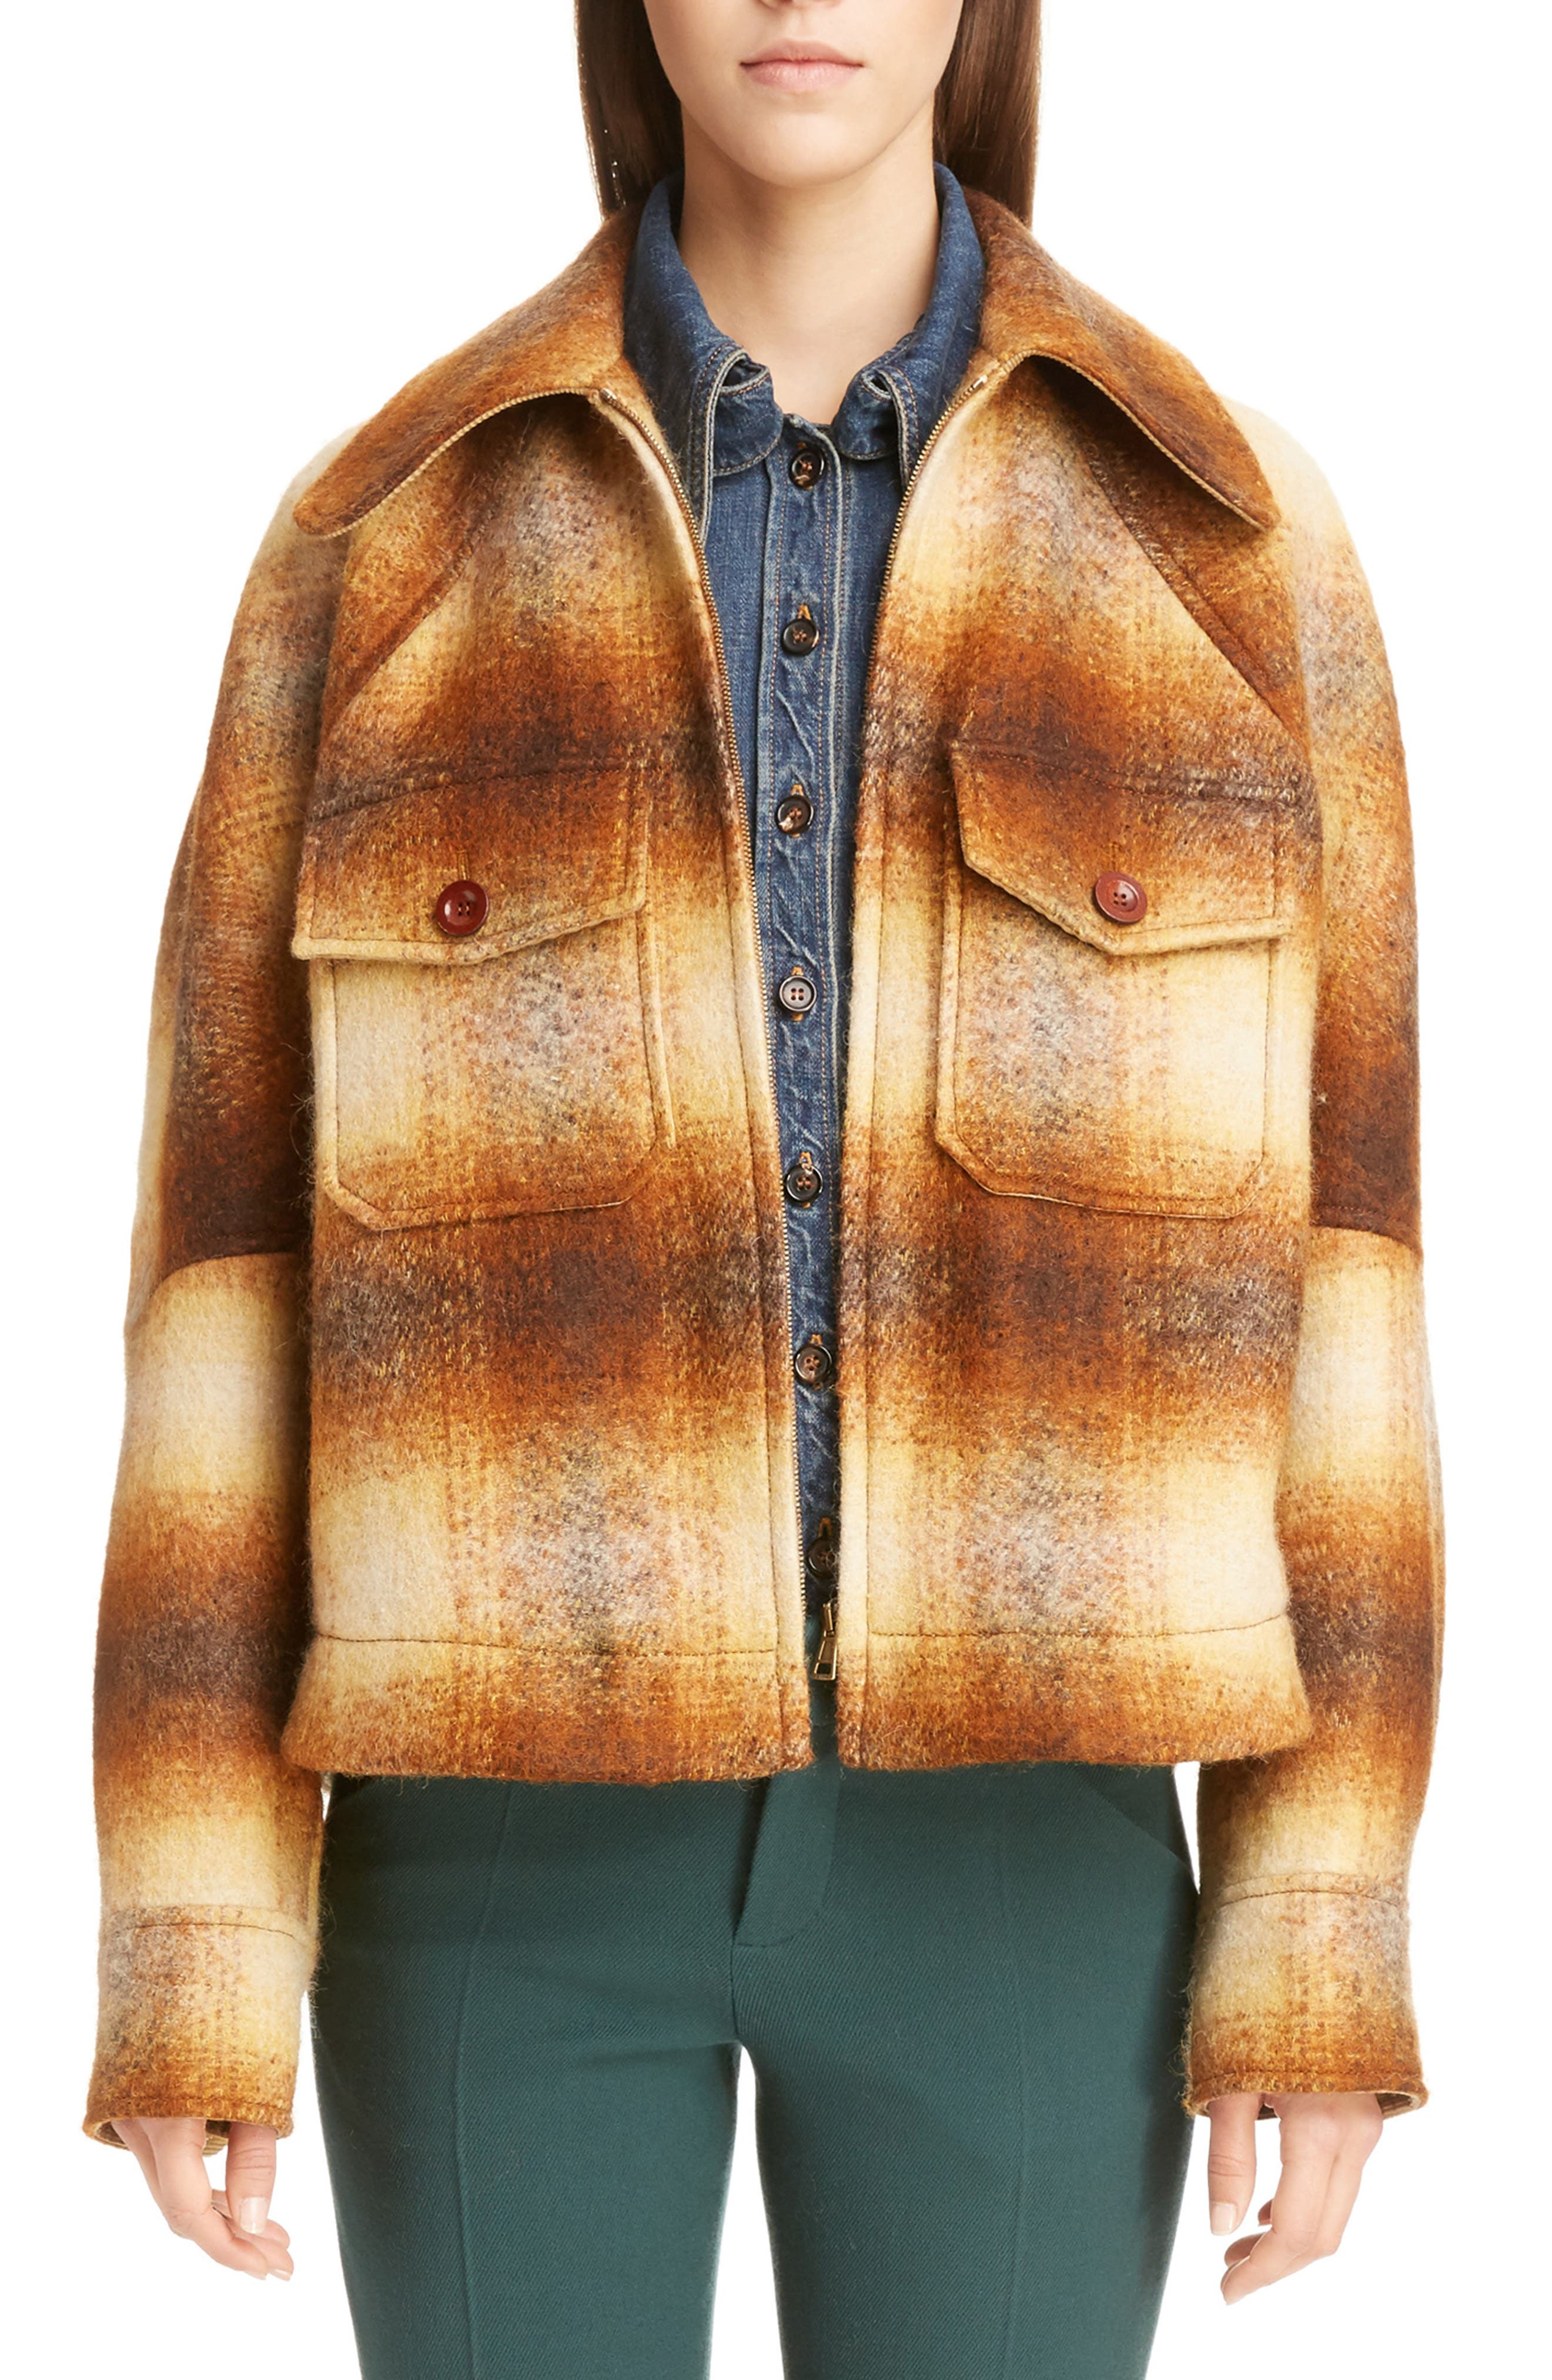 Mohair Blend Check Lumber Jacket,                         Main,                         color, Multicolor Brown